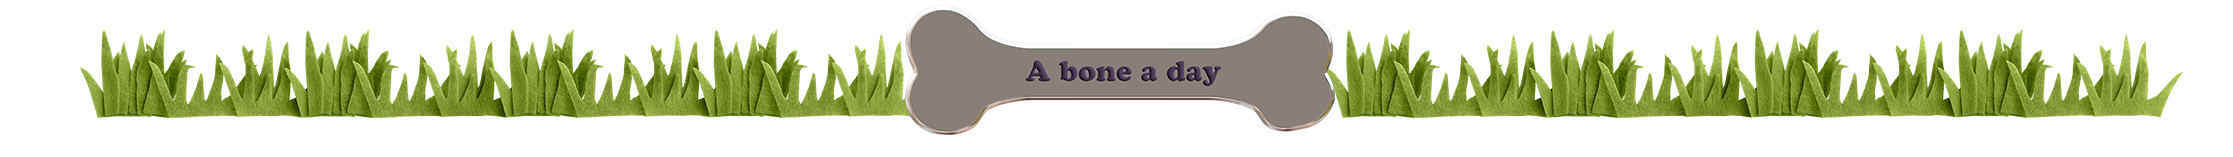 a bone a day.png